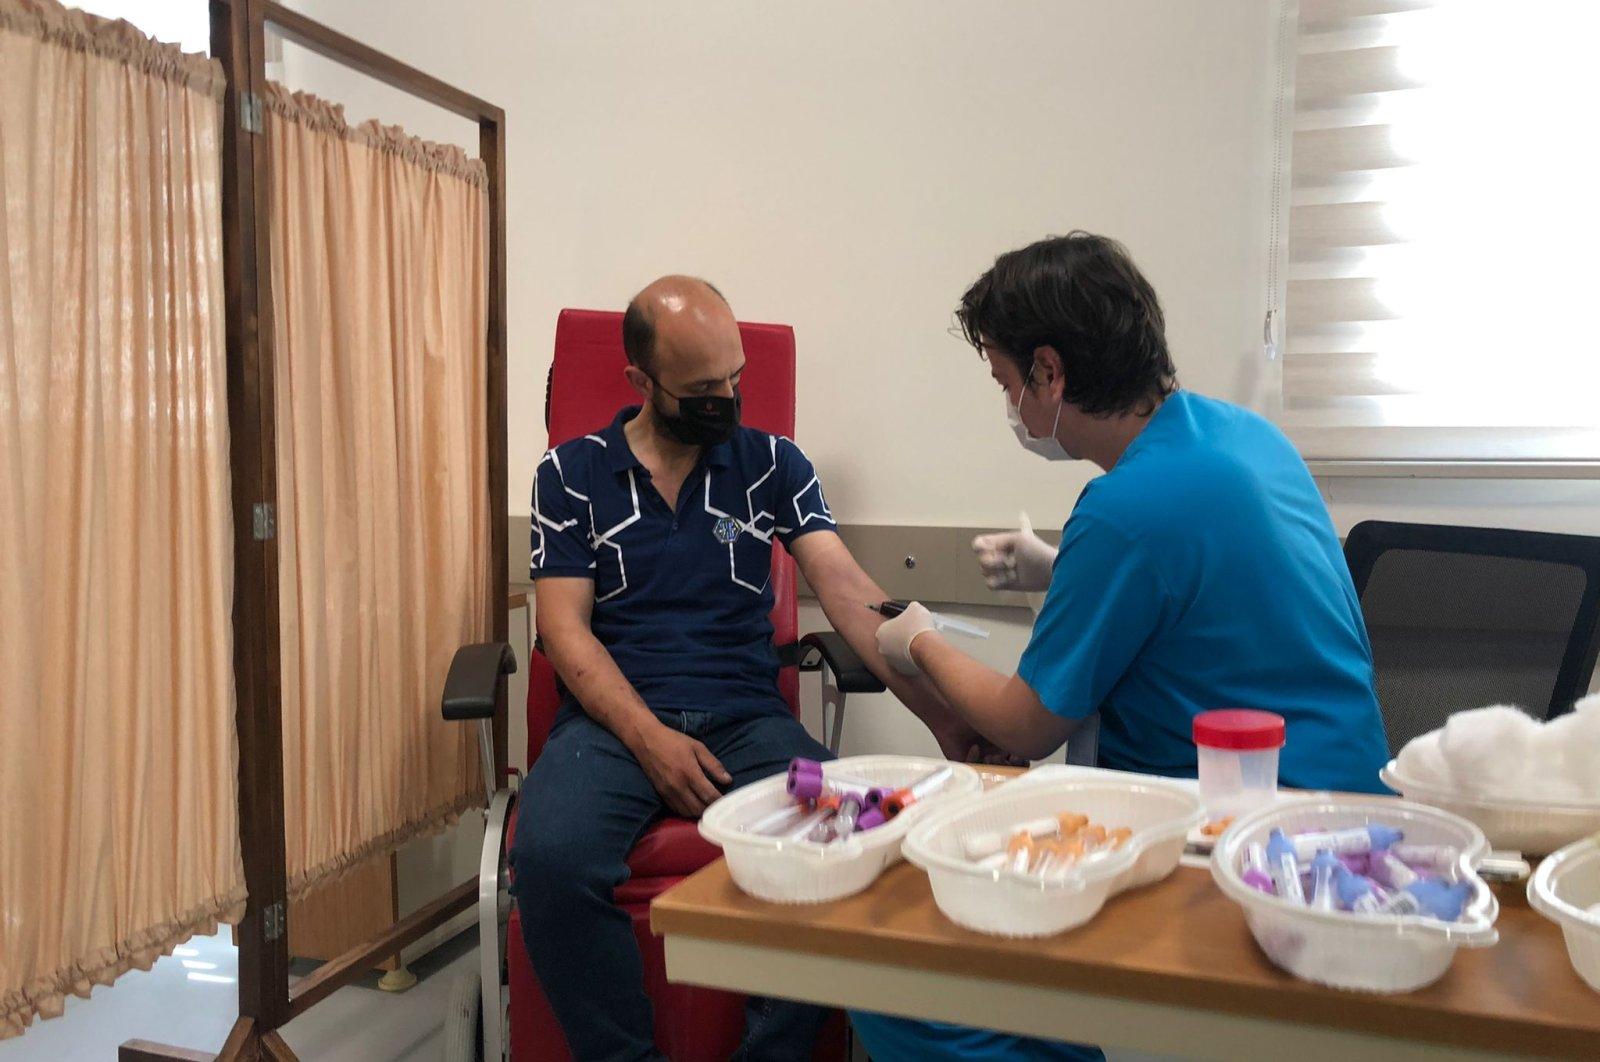 A volunteer is injected with a VLP-based vaccine, in Istanbul, Turkey, July 5, 2021. (DHA PHOTO)